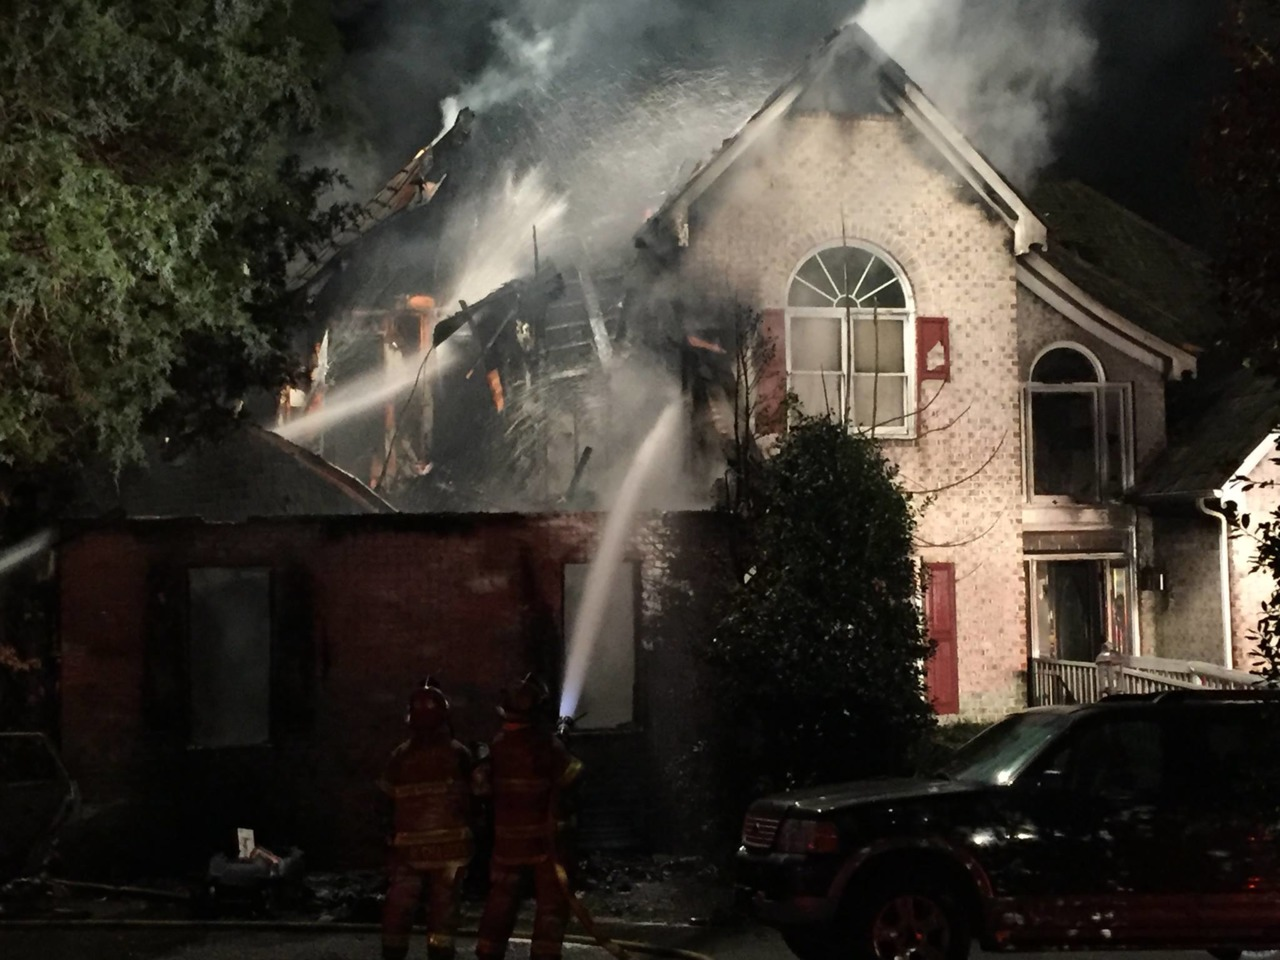 Firefighter Video News - Chesterfield County - Five Killed at House Fire